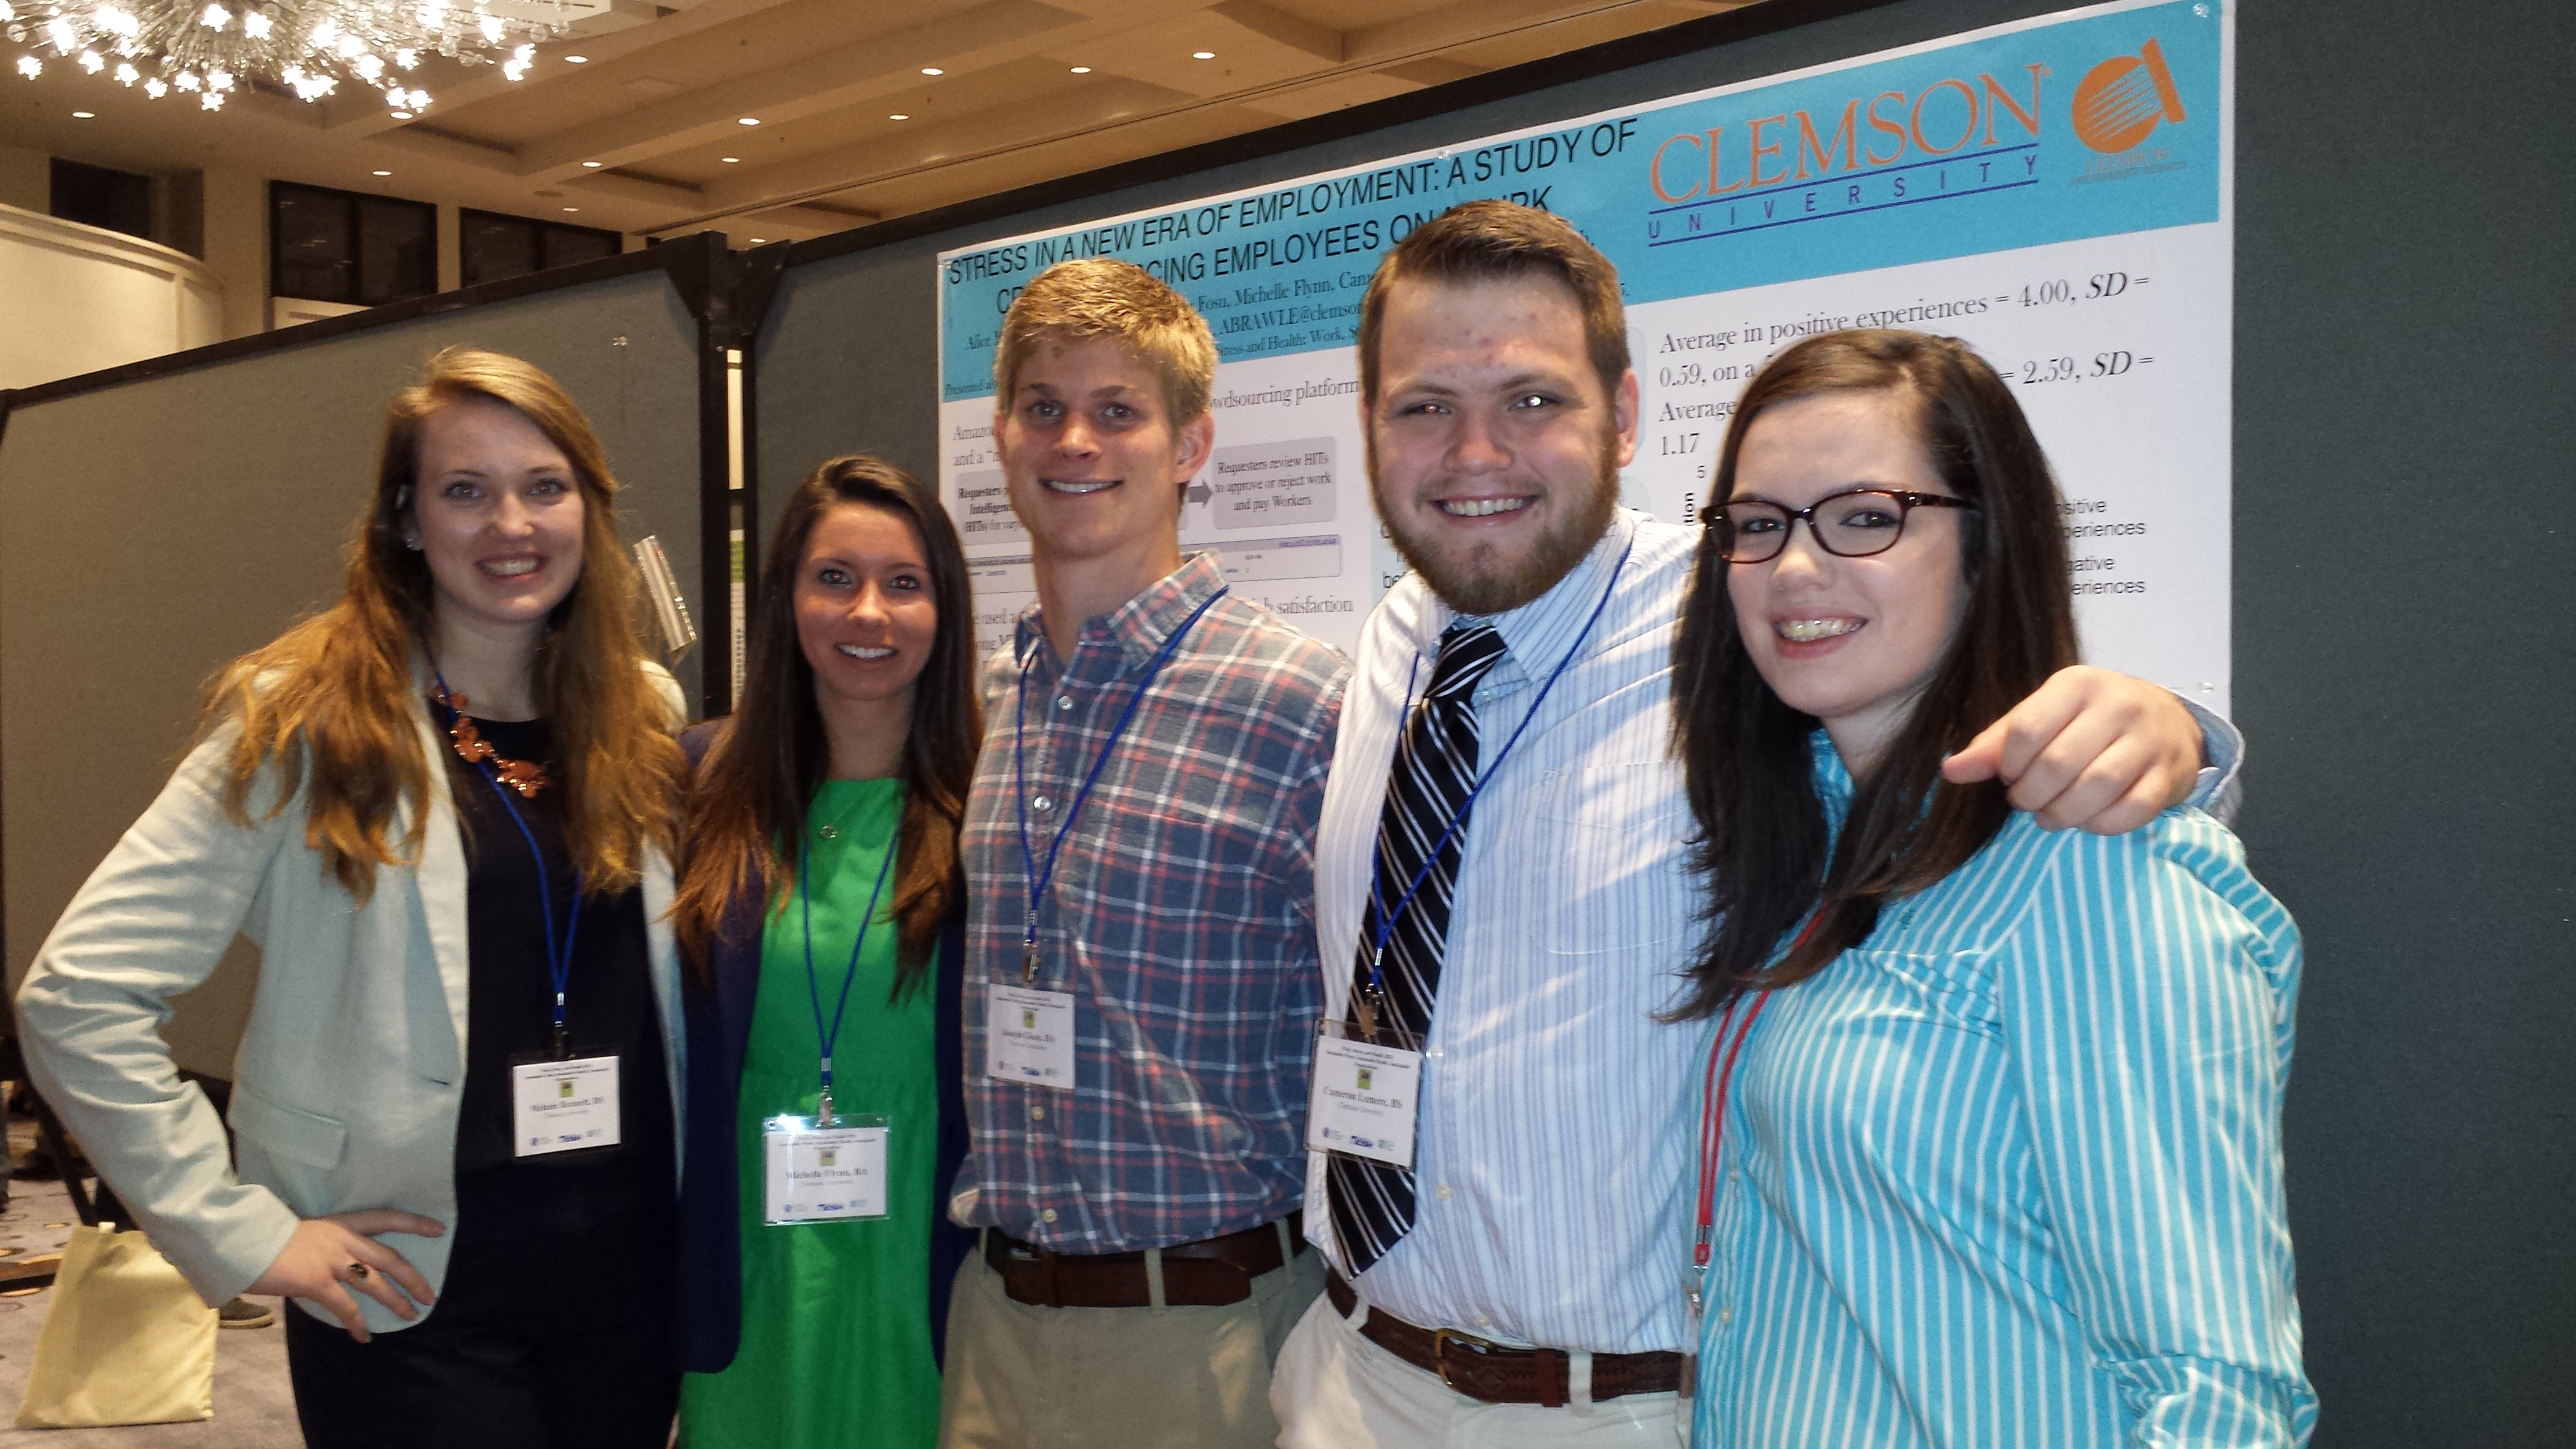 Research assistants presenting at Work, Stress, and Health 2015